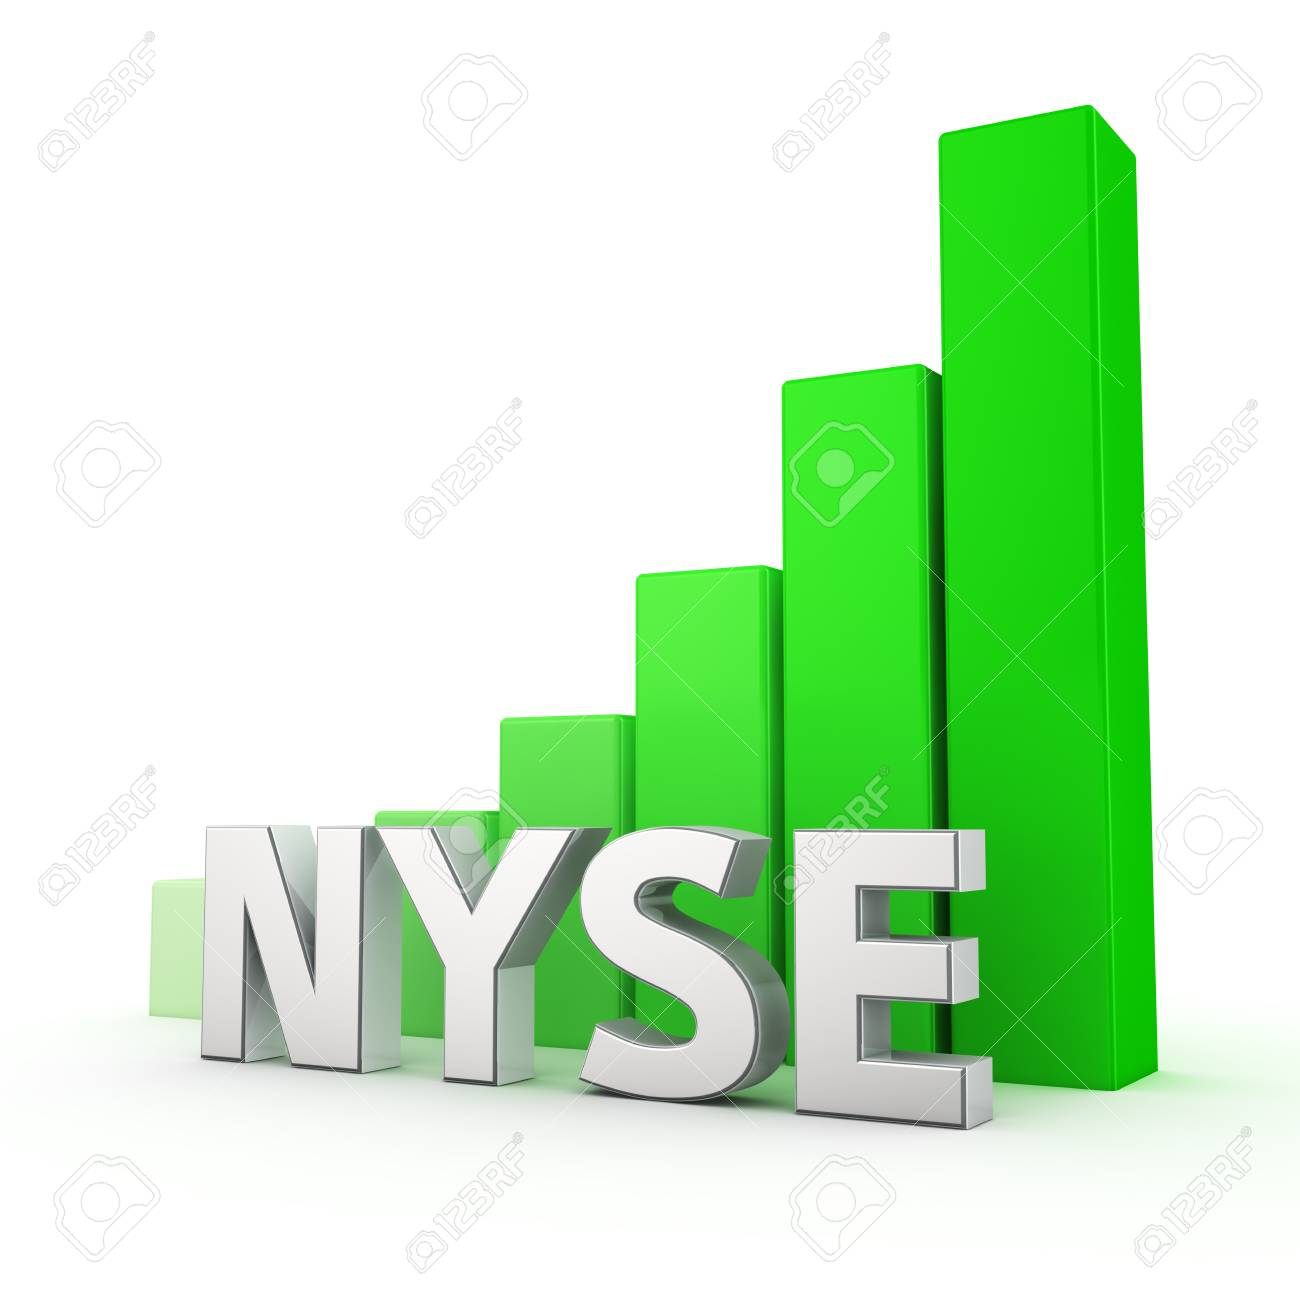 Nyse Quotes | Nyse Index Is Growing The Growth Of Stock Quotes A Bullish Stock